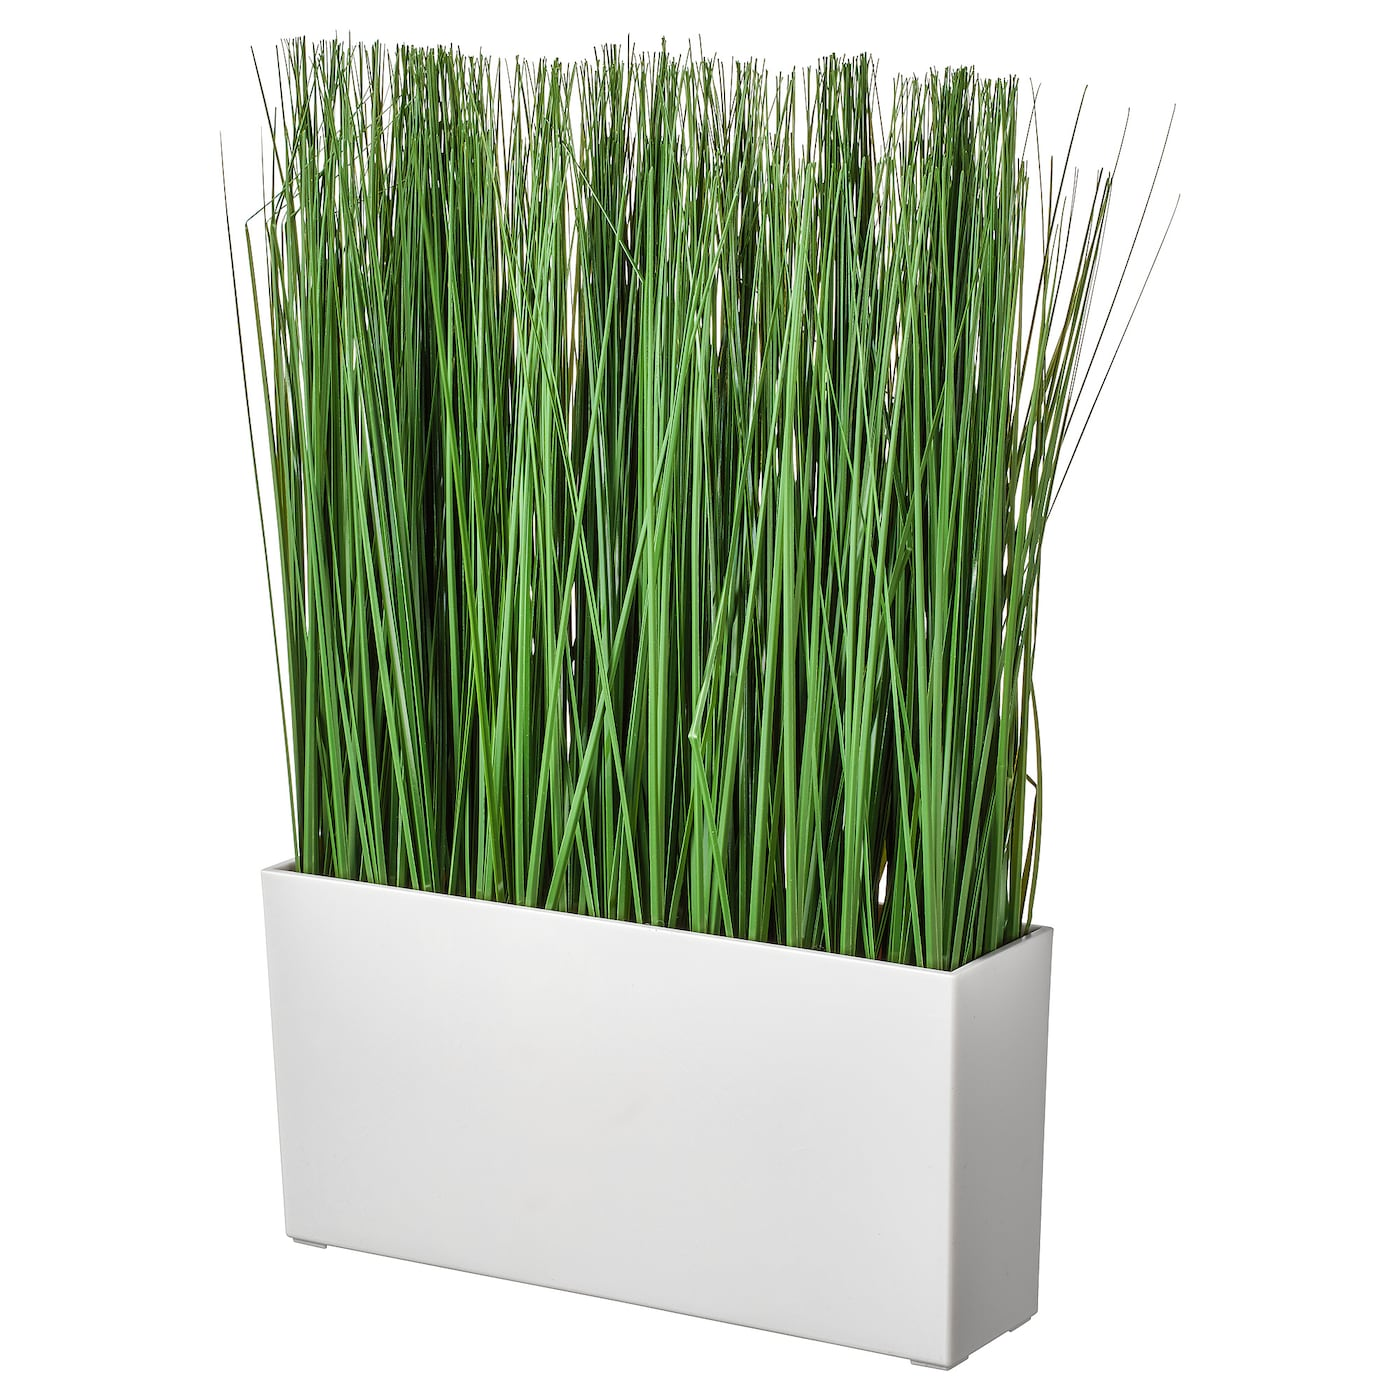 FEJKA Artificial potted plant with pot - in/outdoor grass